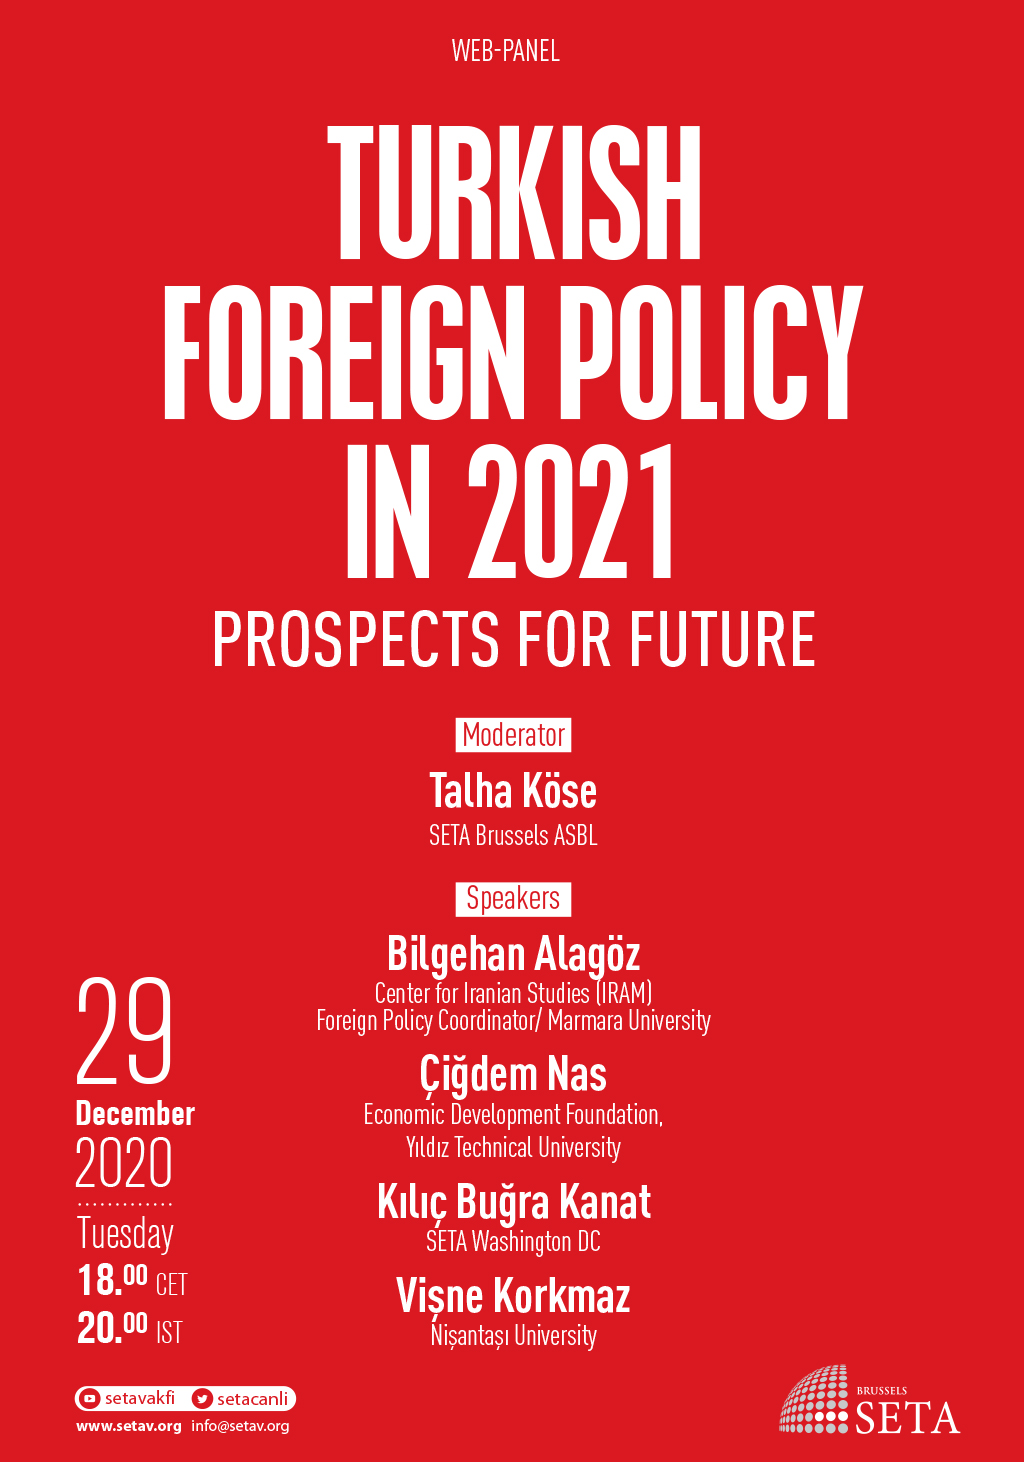 Web Panel: Turkish Foreign Policy in 2021 | Prospects for future